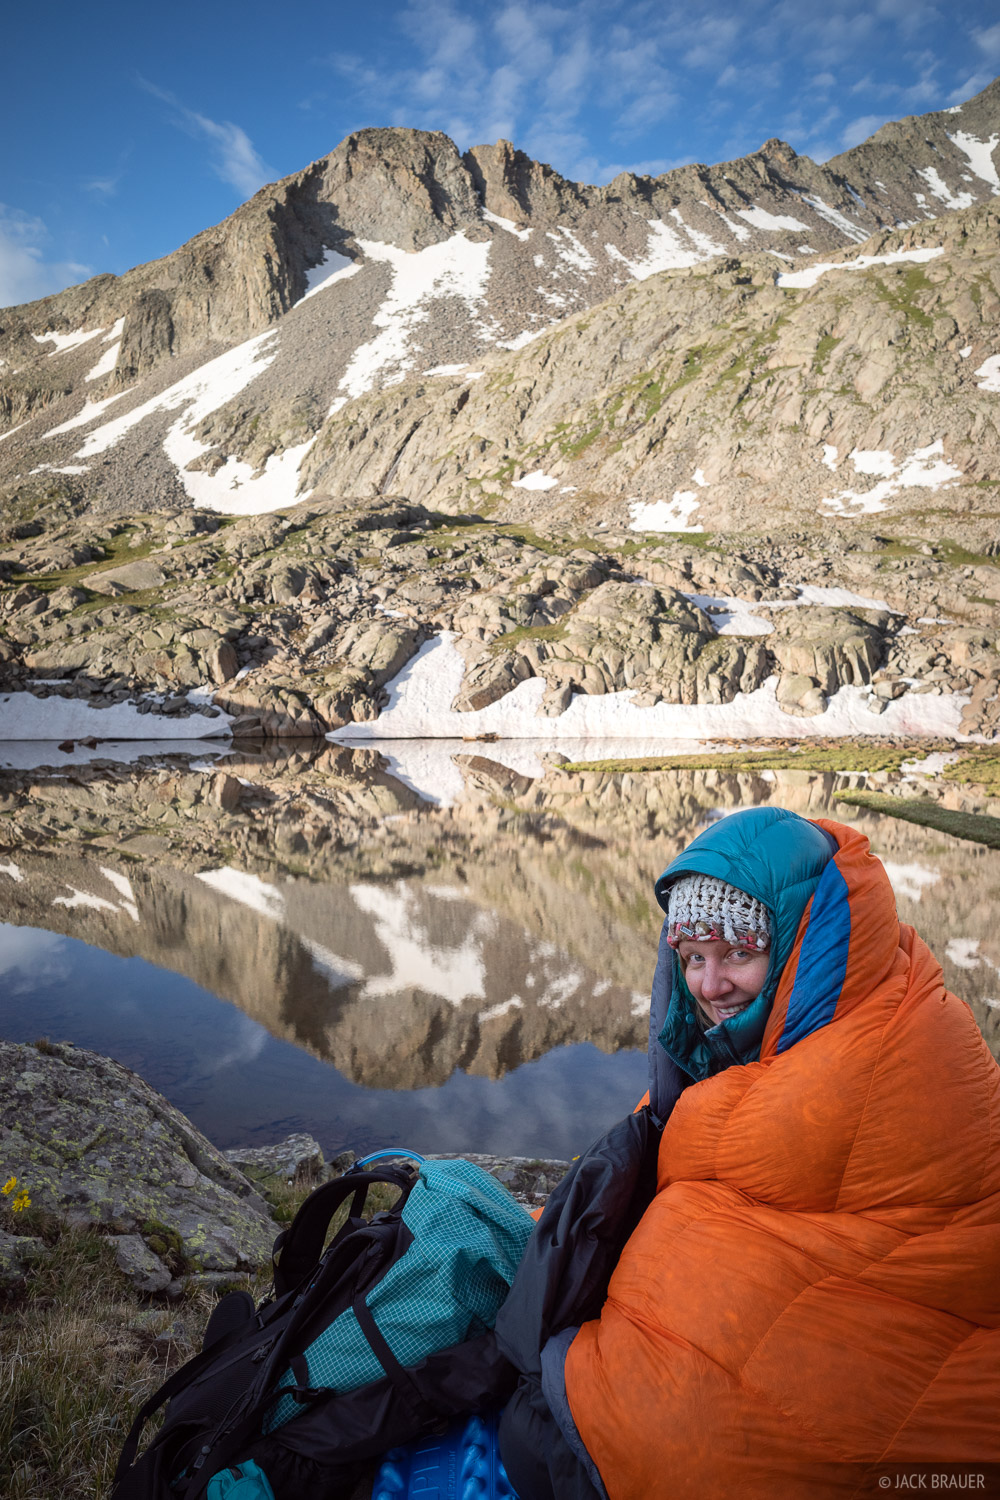 Bundled up in the morning at a high alpine lake.